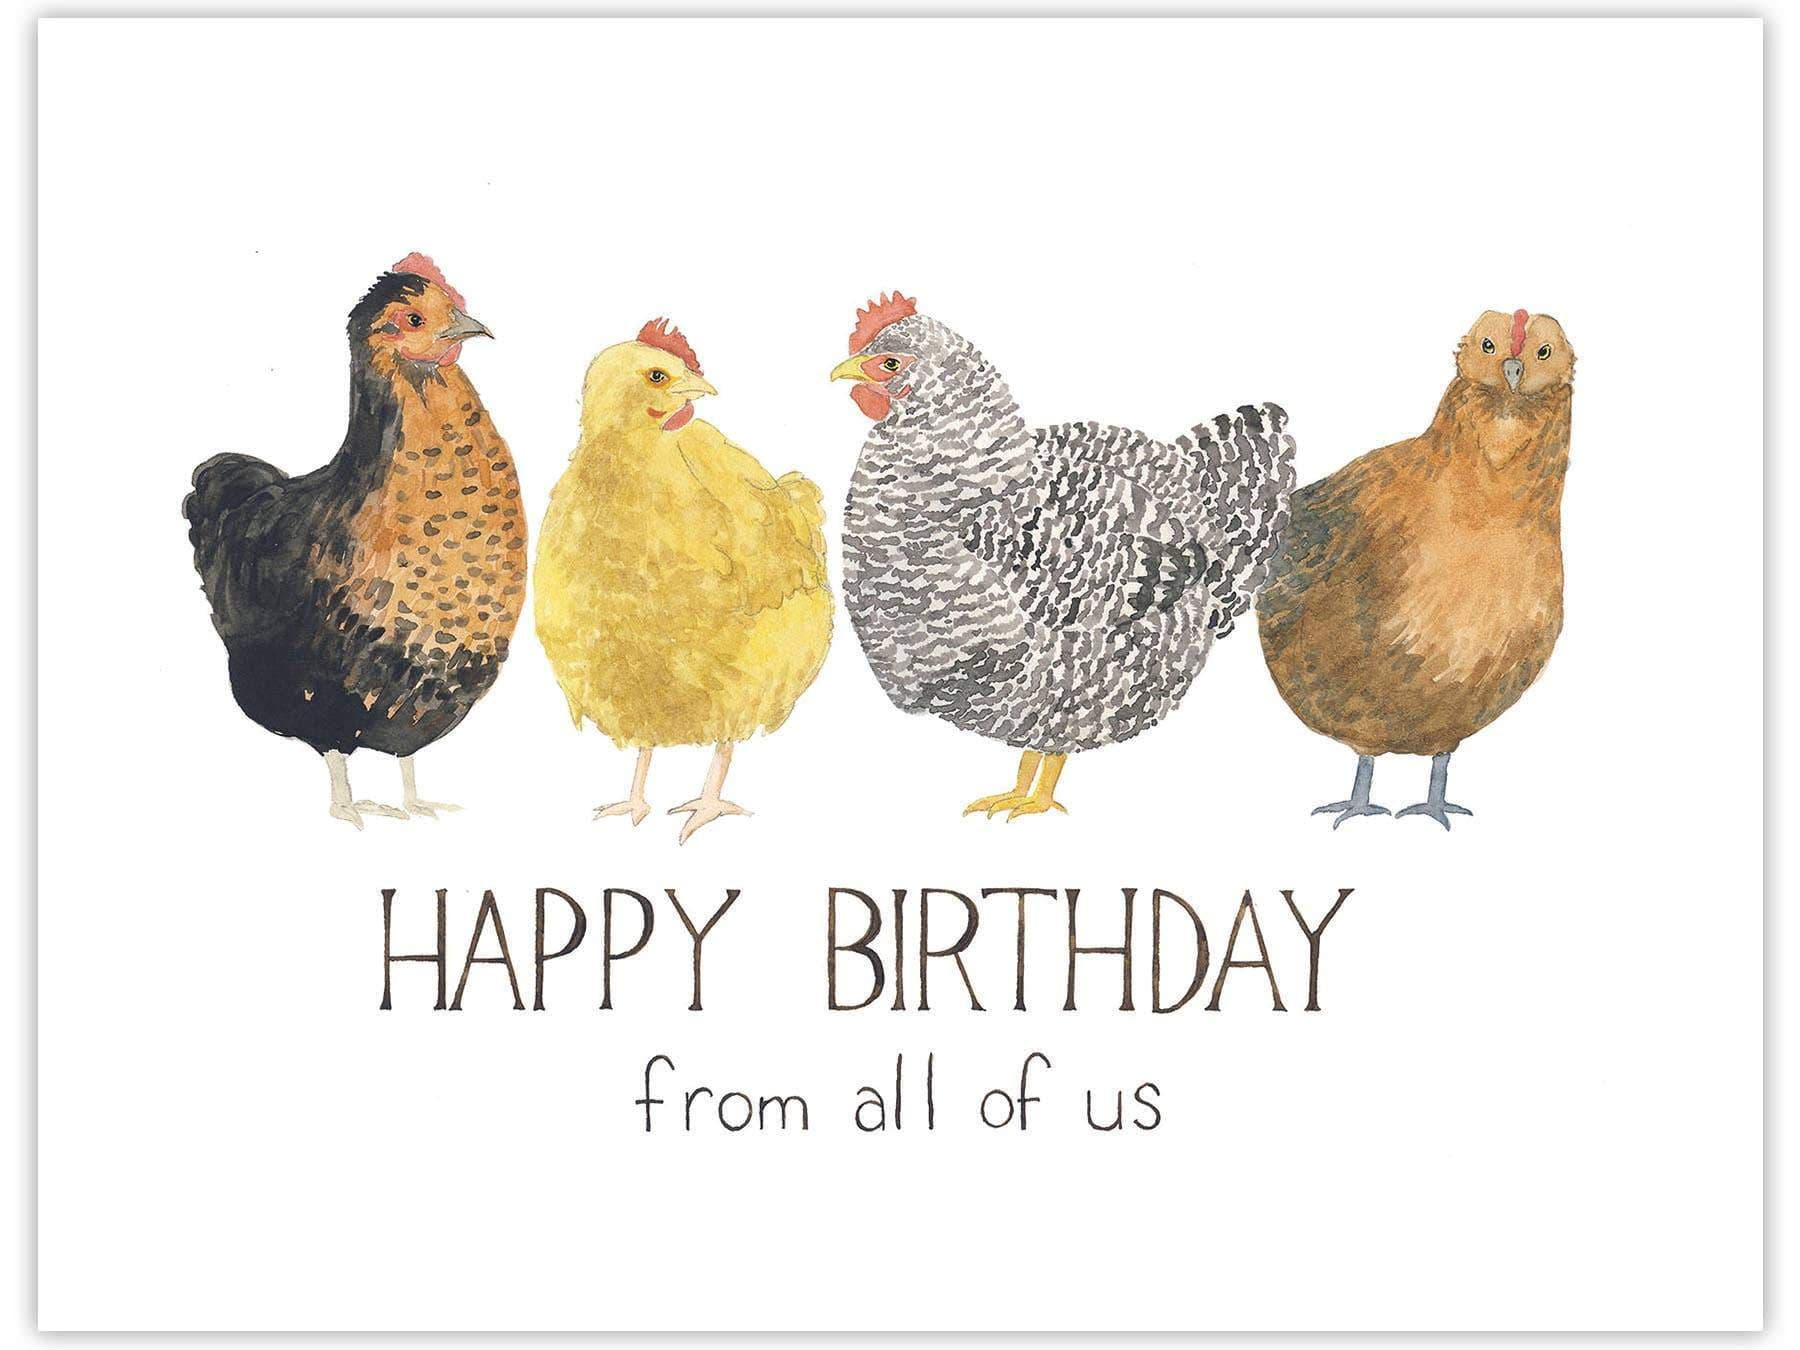 Chickens Birthday Card